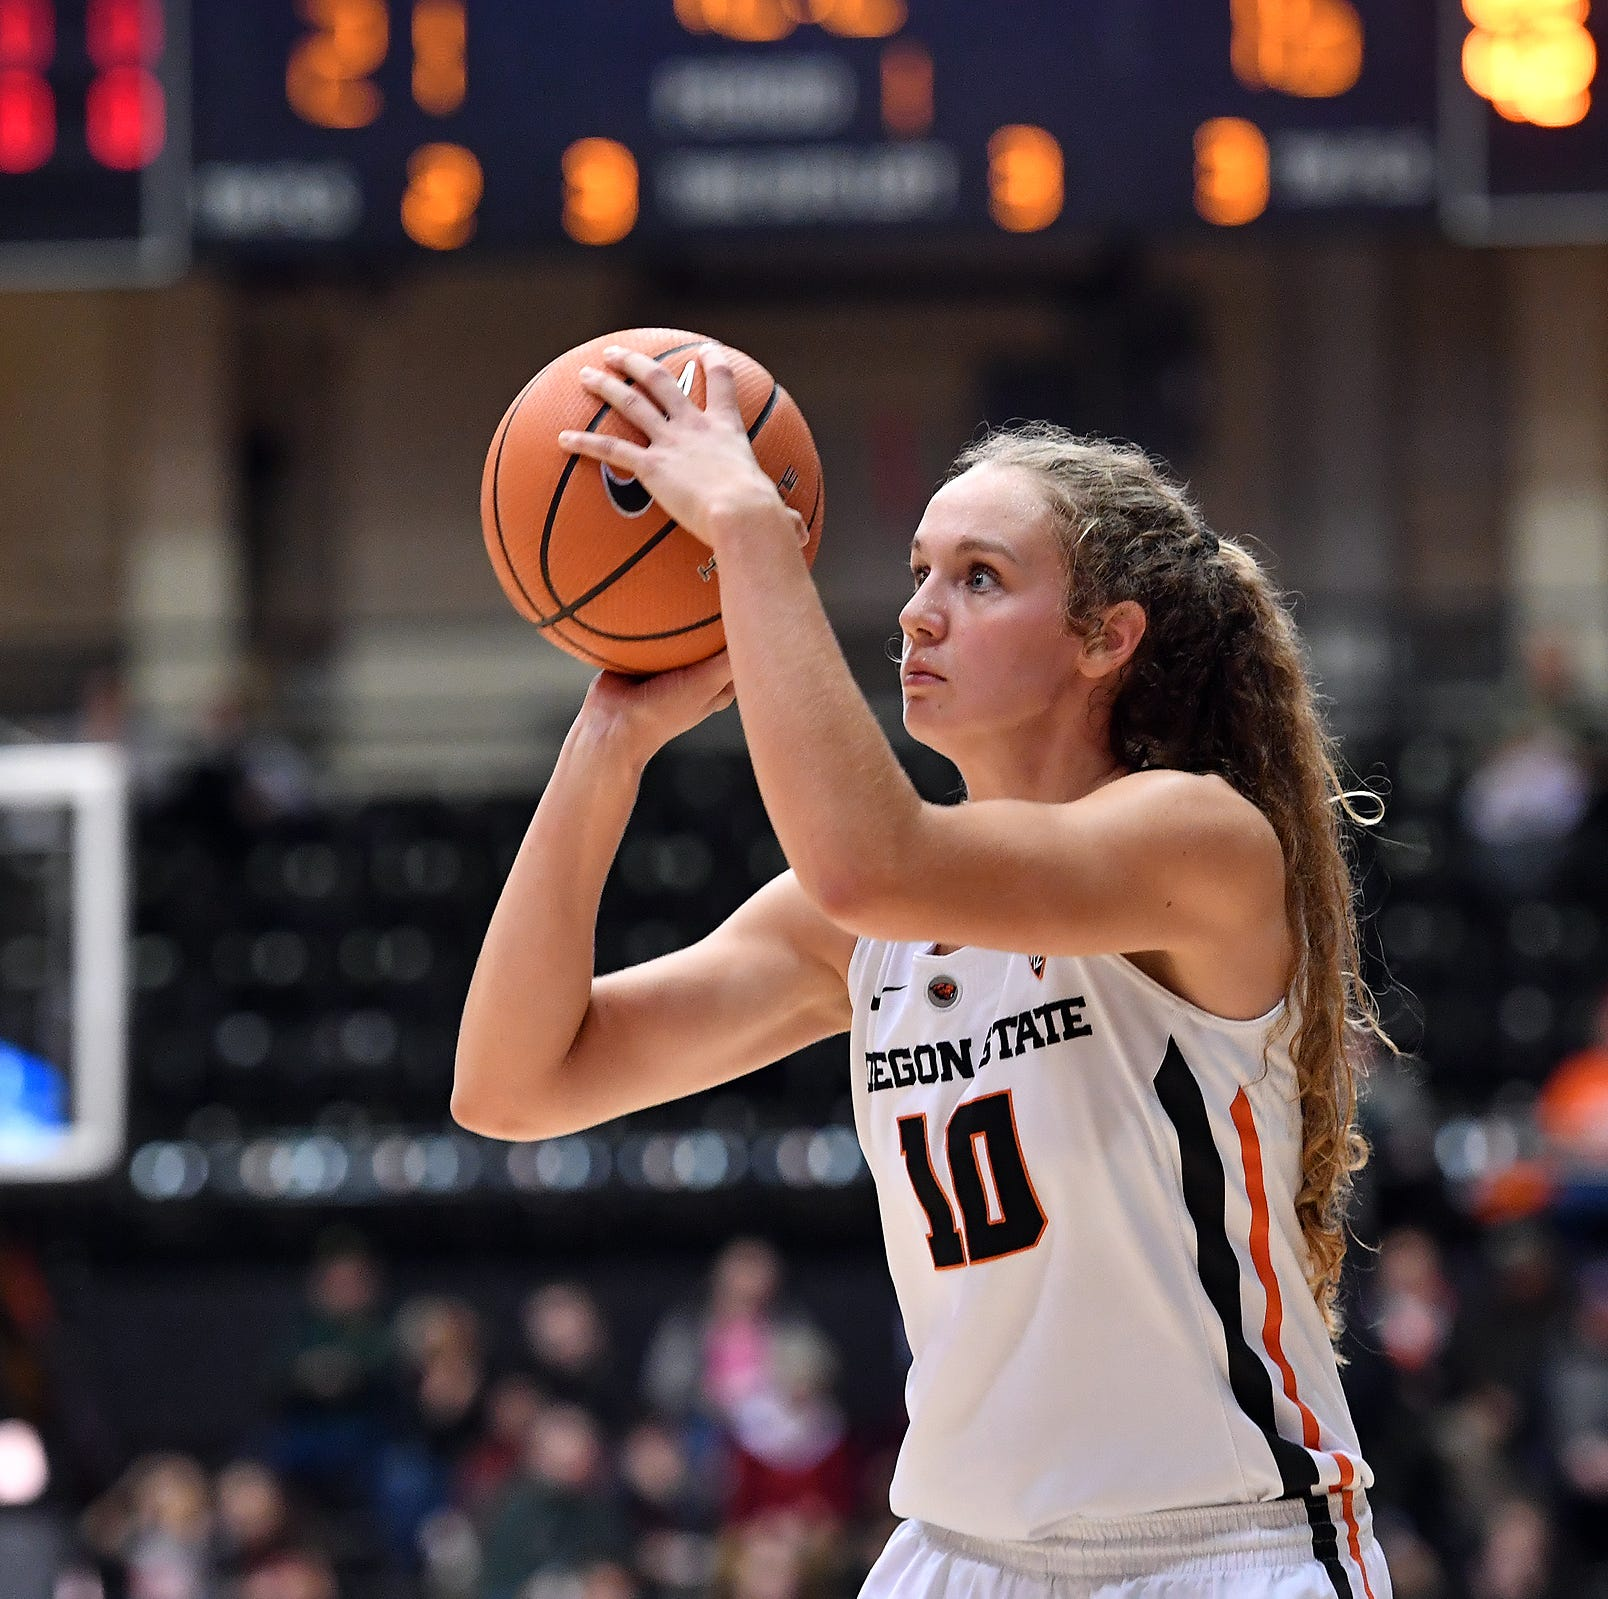 Oregon State Beavers women open NCAA tournament at home